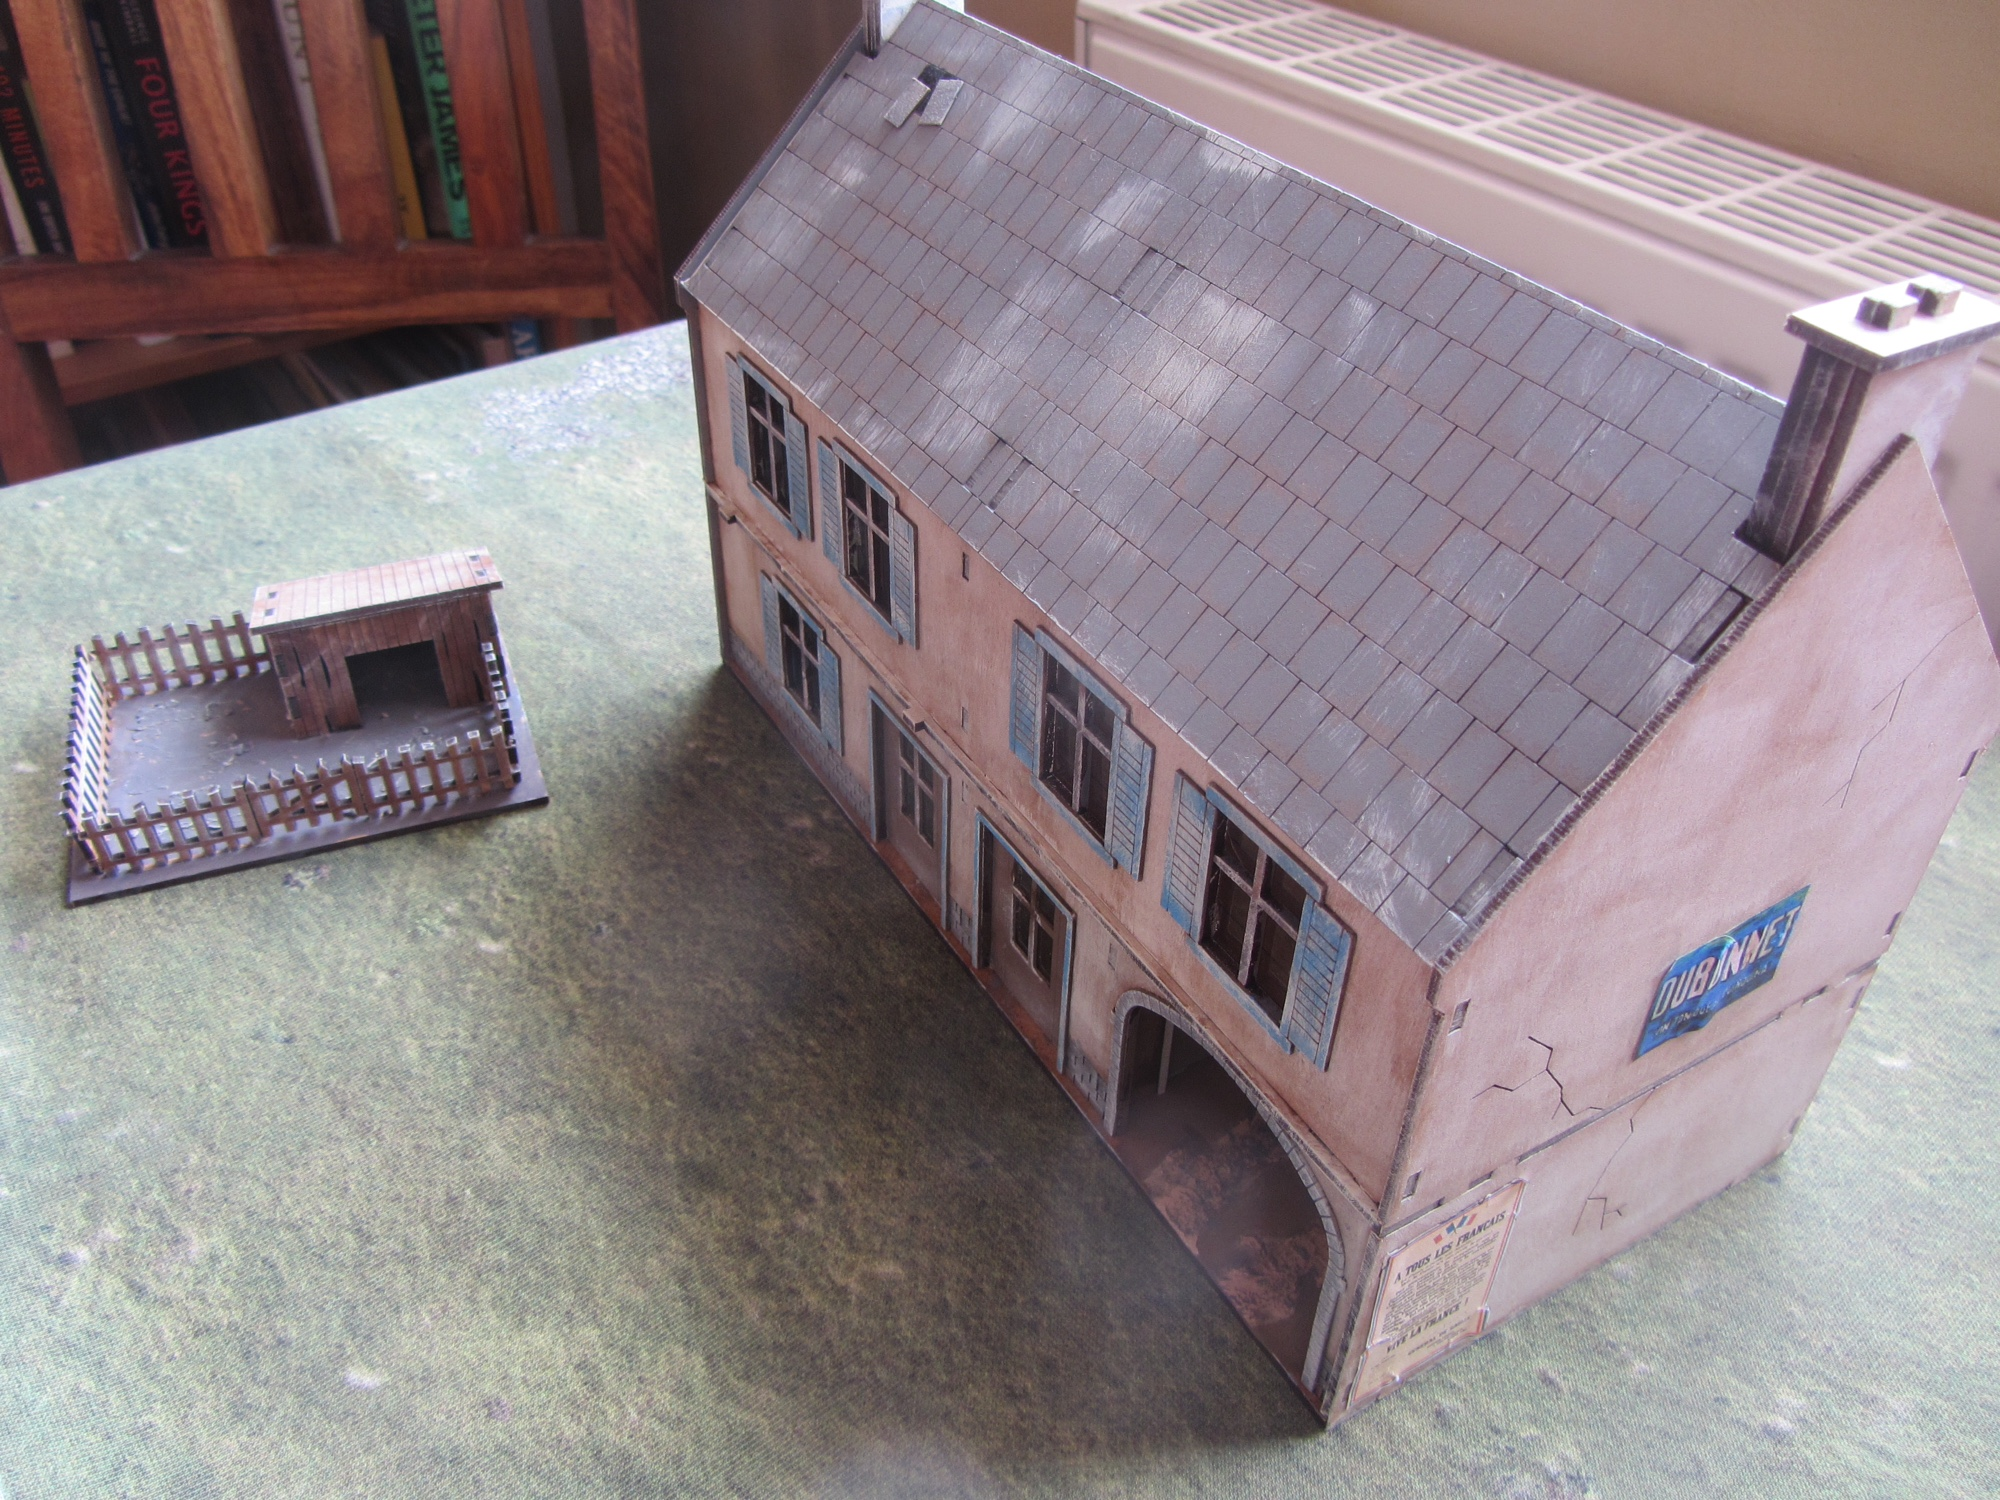 A rather nice Sarissa farmhouse, and a pigpen from Warbases, both from Mervyn Douglas